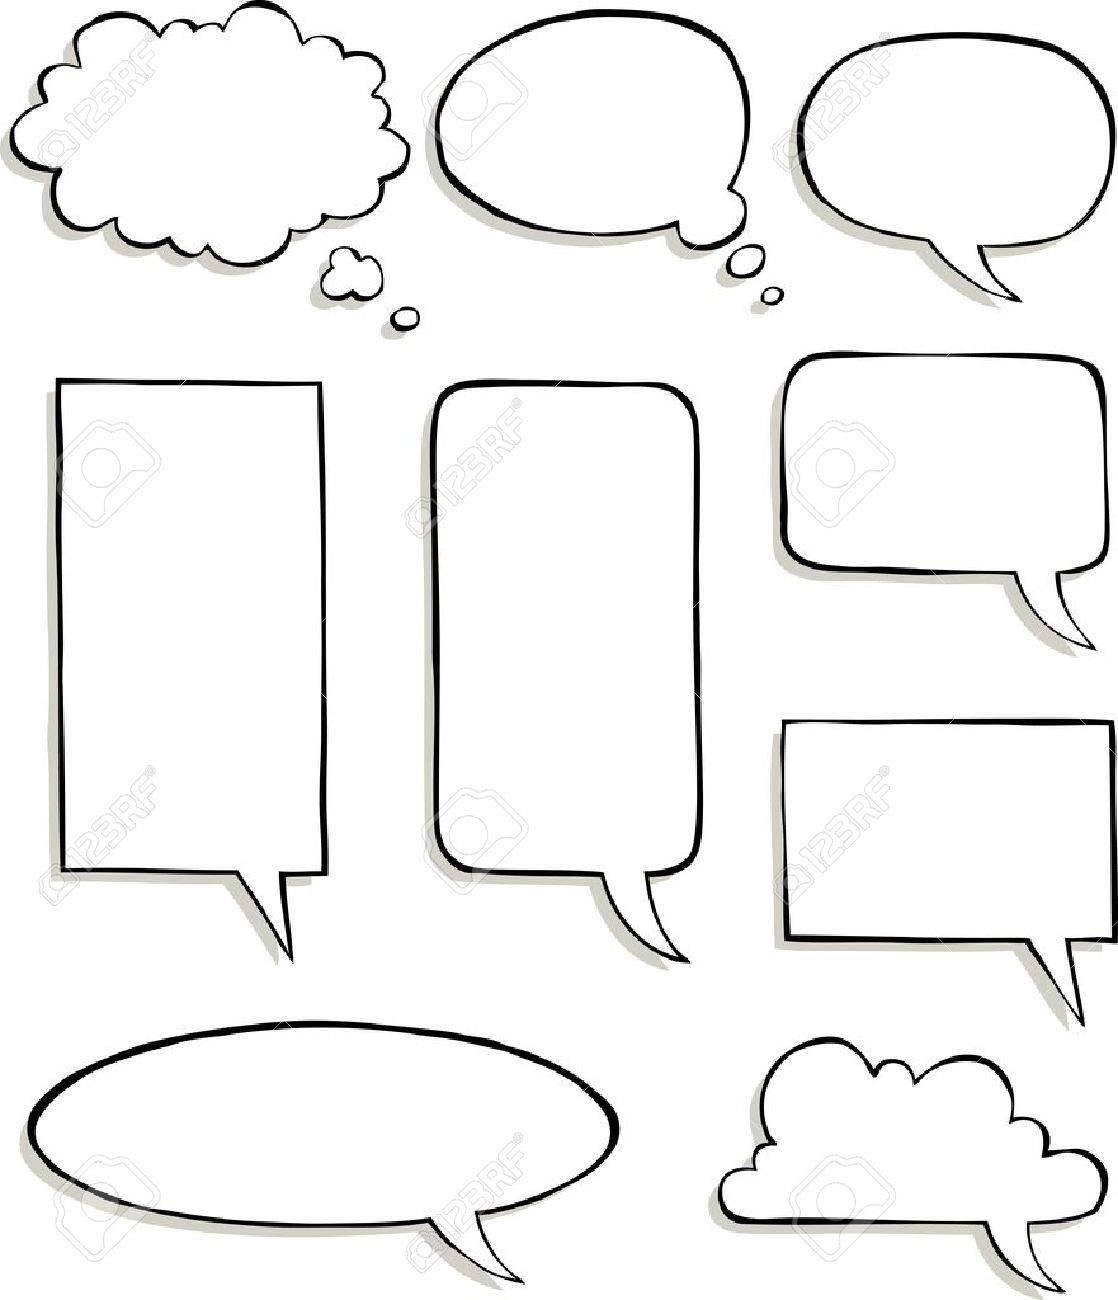 Set of comic speech bubbles vector illustration Stock Vector - 20907010